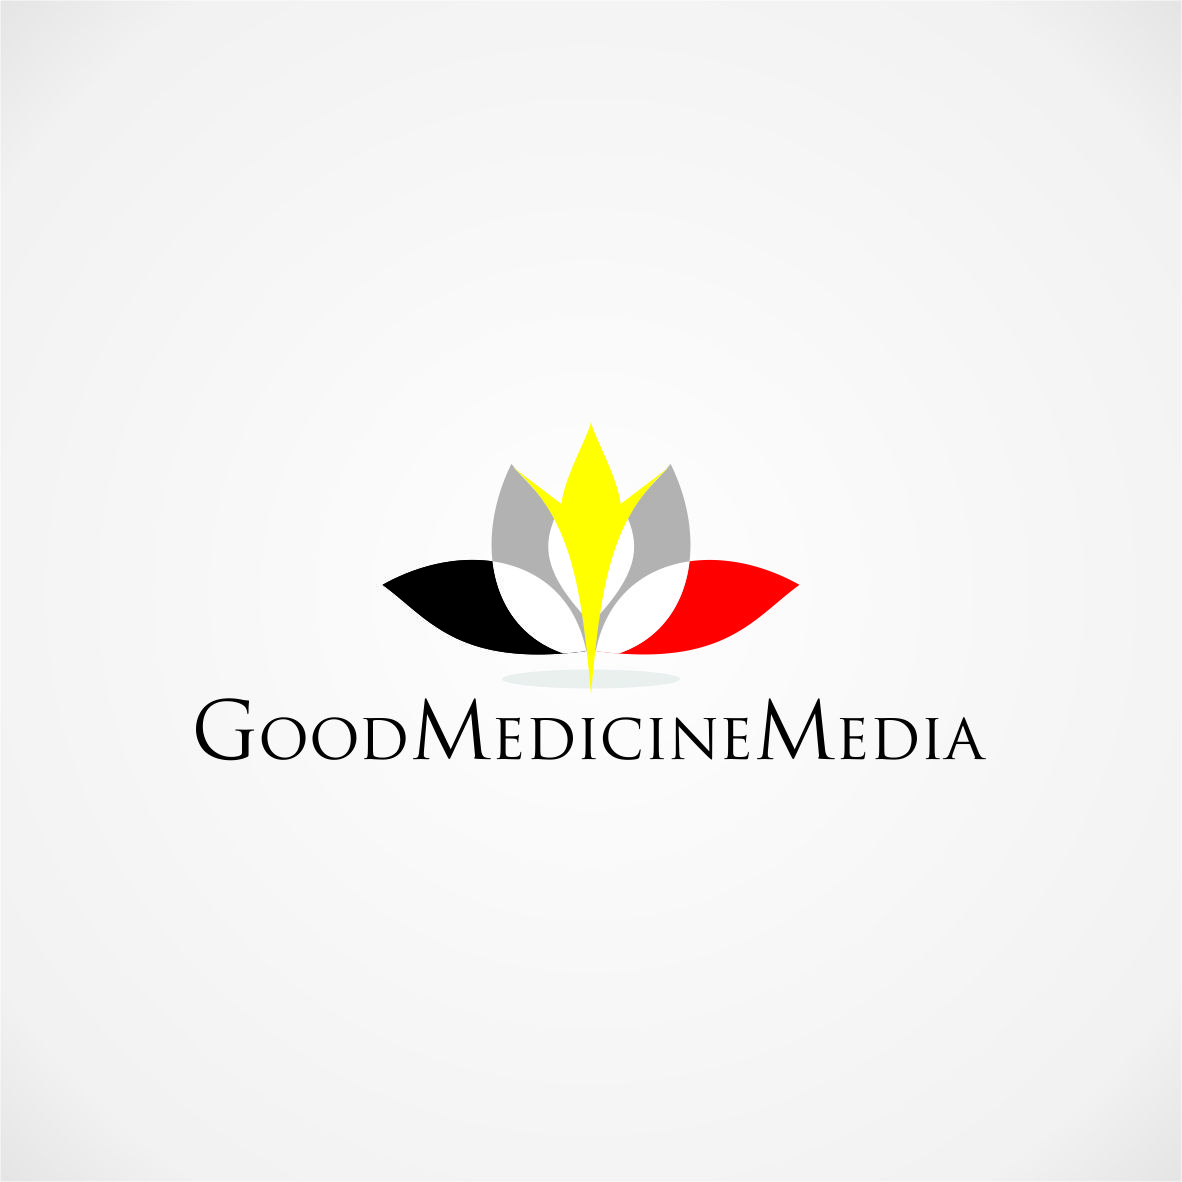 Logo Design by arteo_design - Entry No. 241 in the Logo Design Contest Good Medicine Media Logo Design.